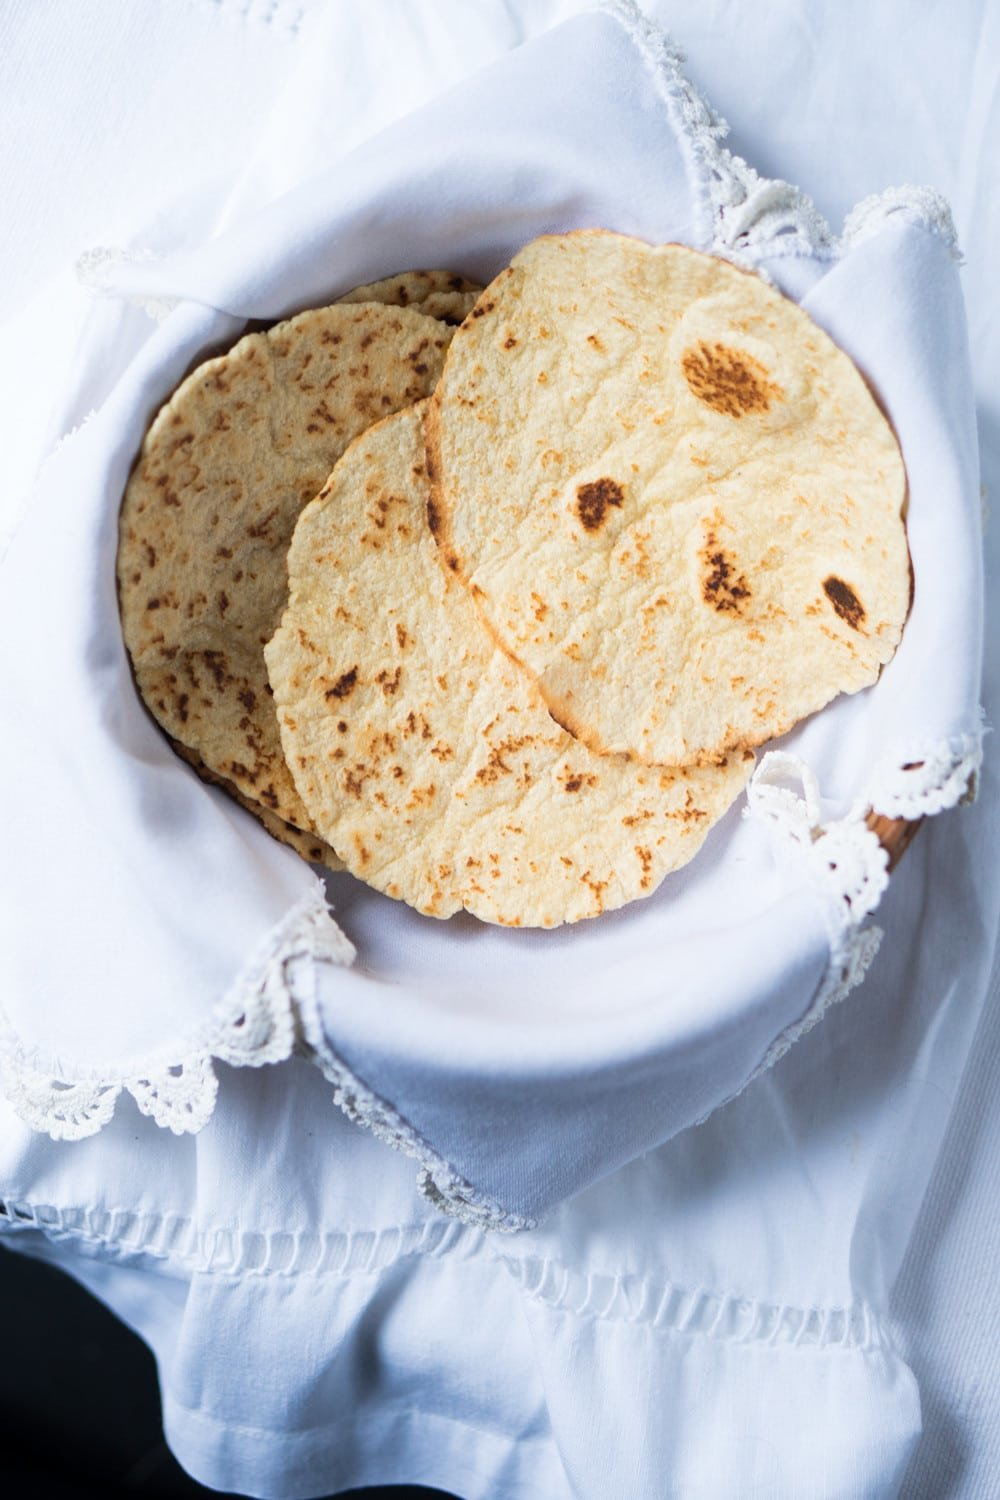 15-Minute Gluten Free & Keto Tortillas 🌮 Suuuper pliable, just 1 egg, & 2g net carbs!